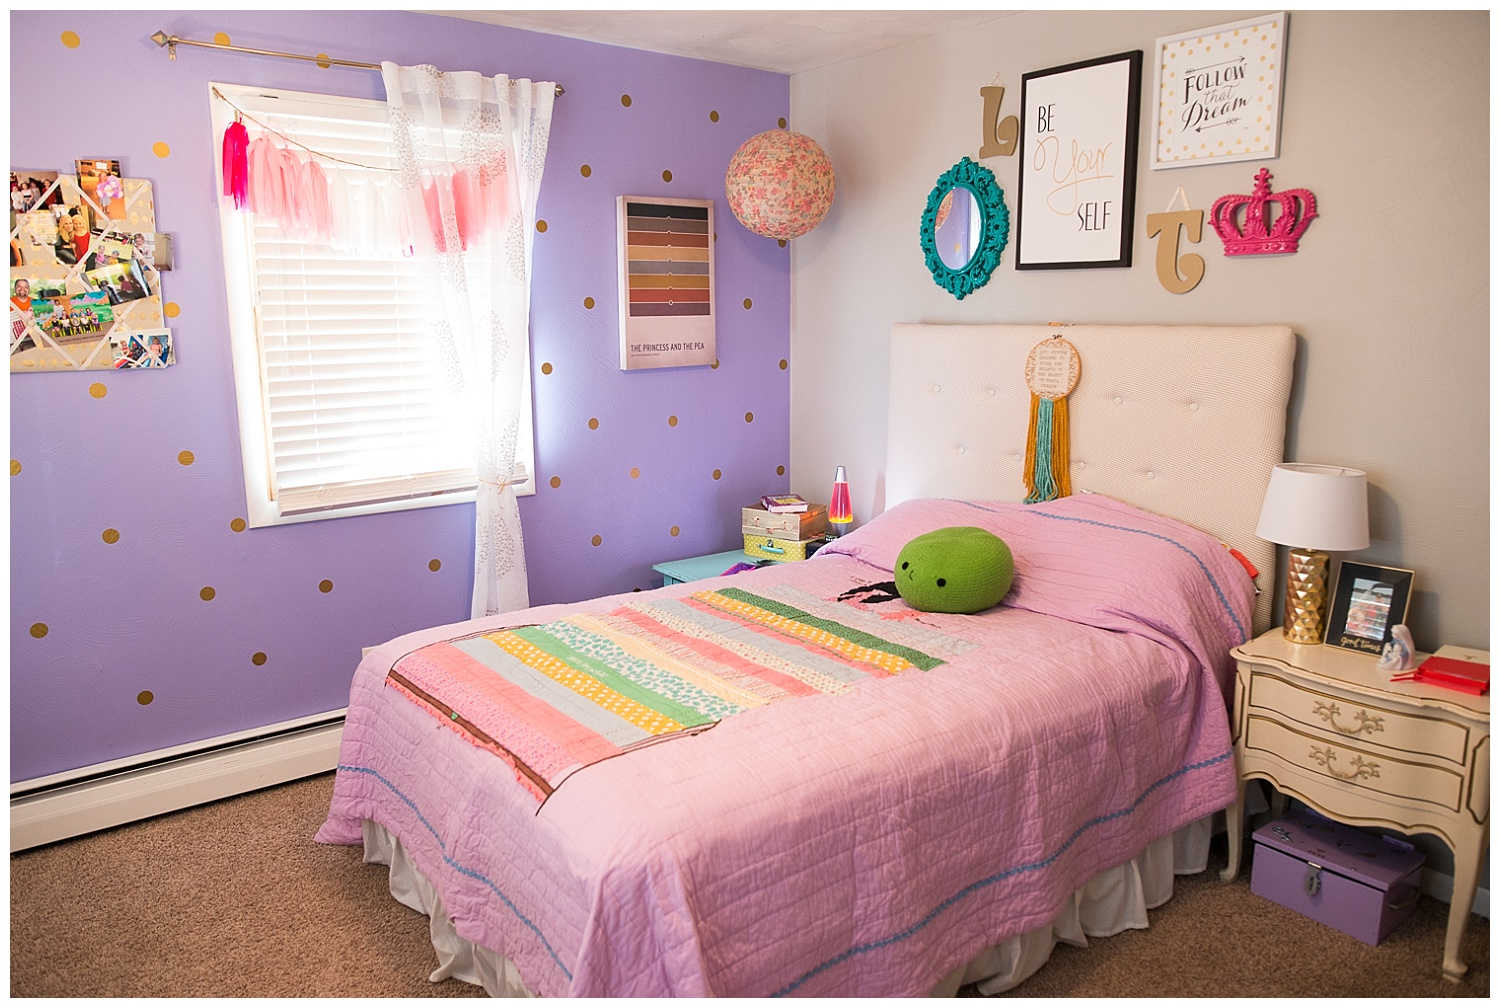 Here we have Lily and Tess's room. They share this room and the theme is the Princess and the Pea. I love the addition of the gold dot wall decals on the purple wall. Such an easy way to jazz up a room. We do have similar ones in Fresh Digs.